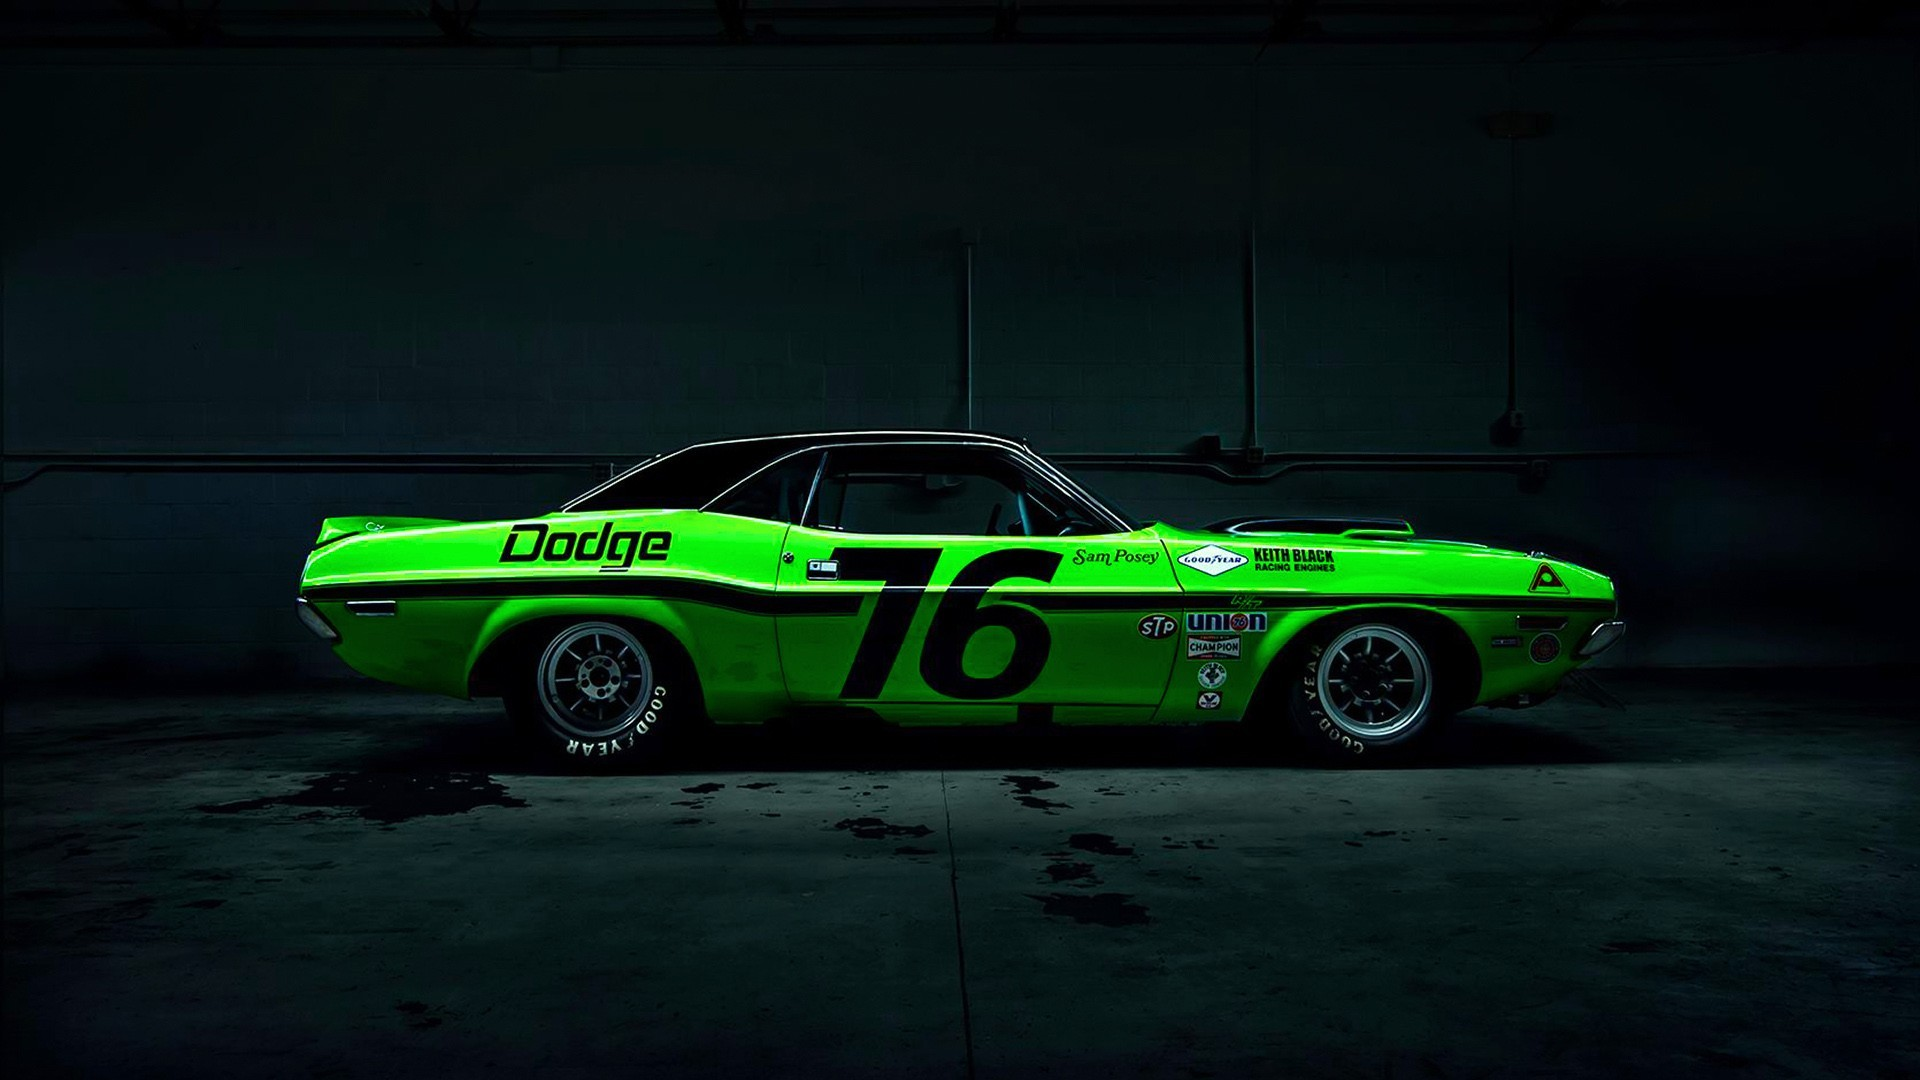 Res: 1920x1080, Tags: Racing Dodge Challenger Drag